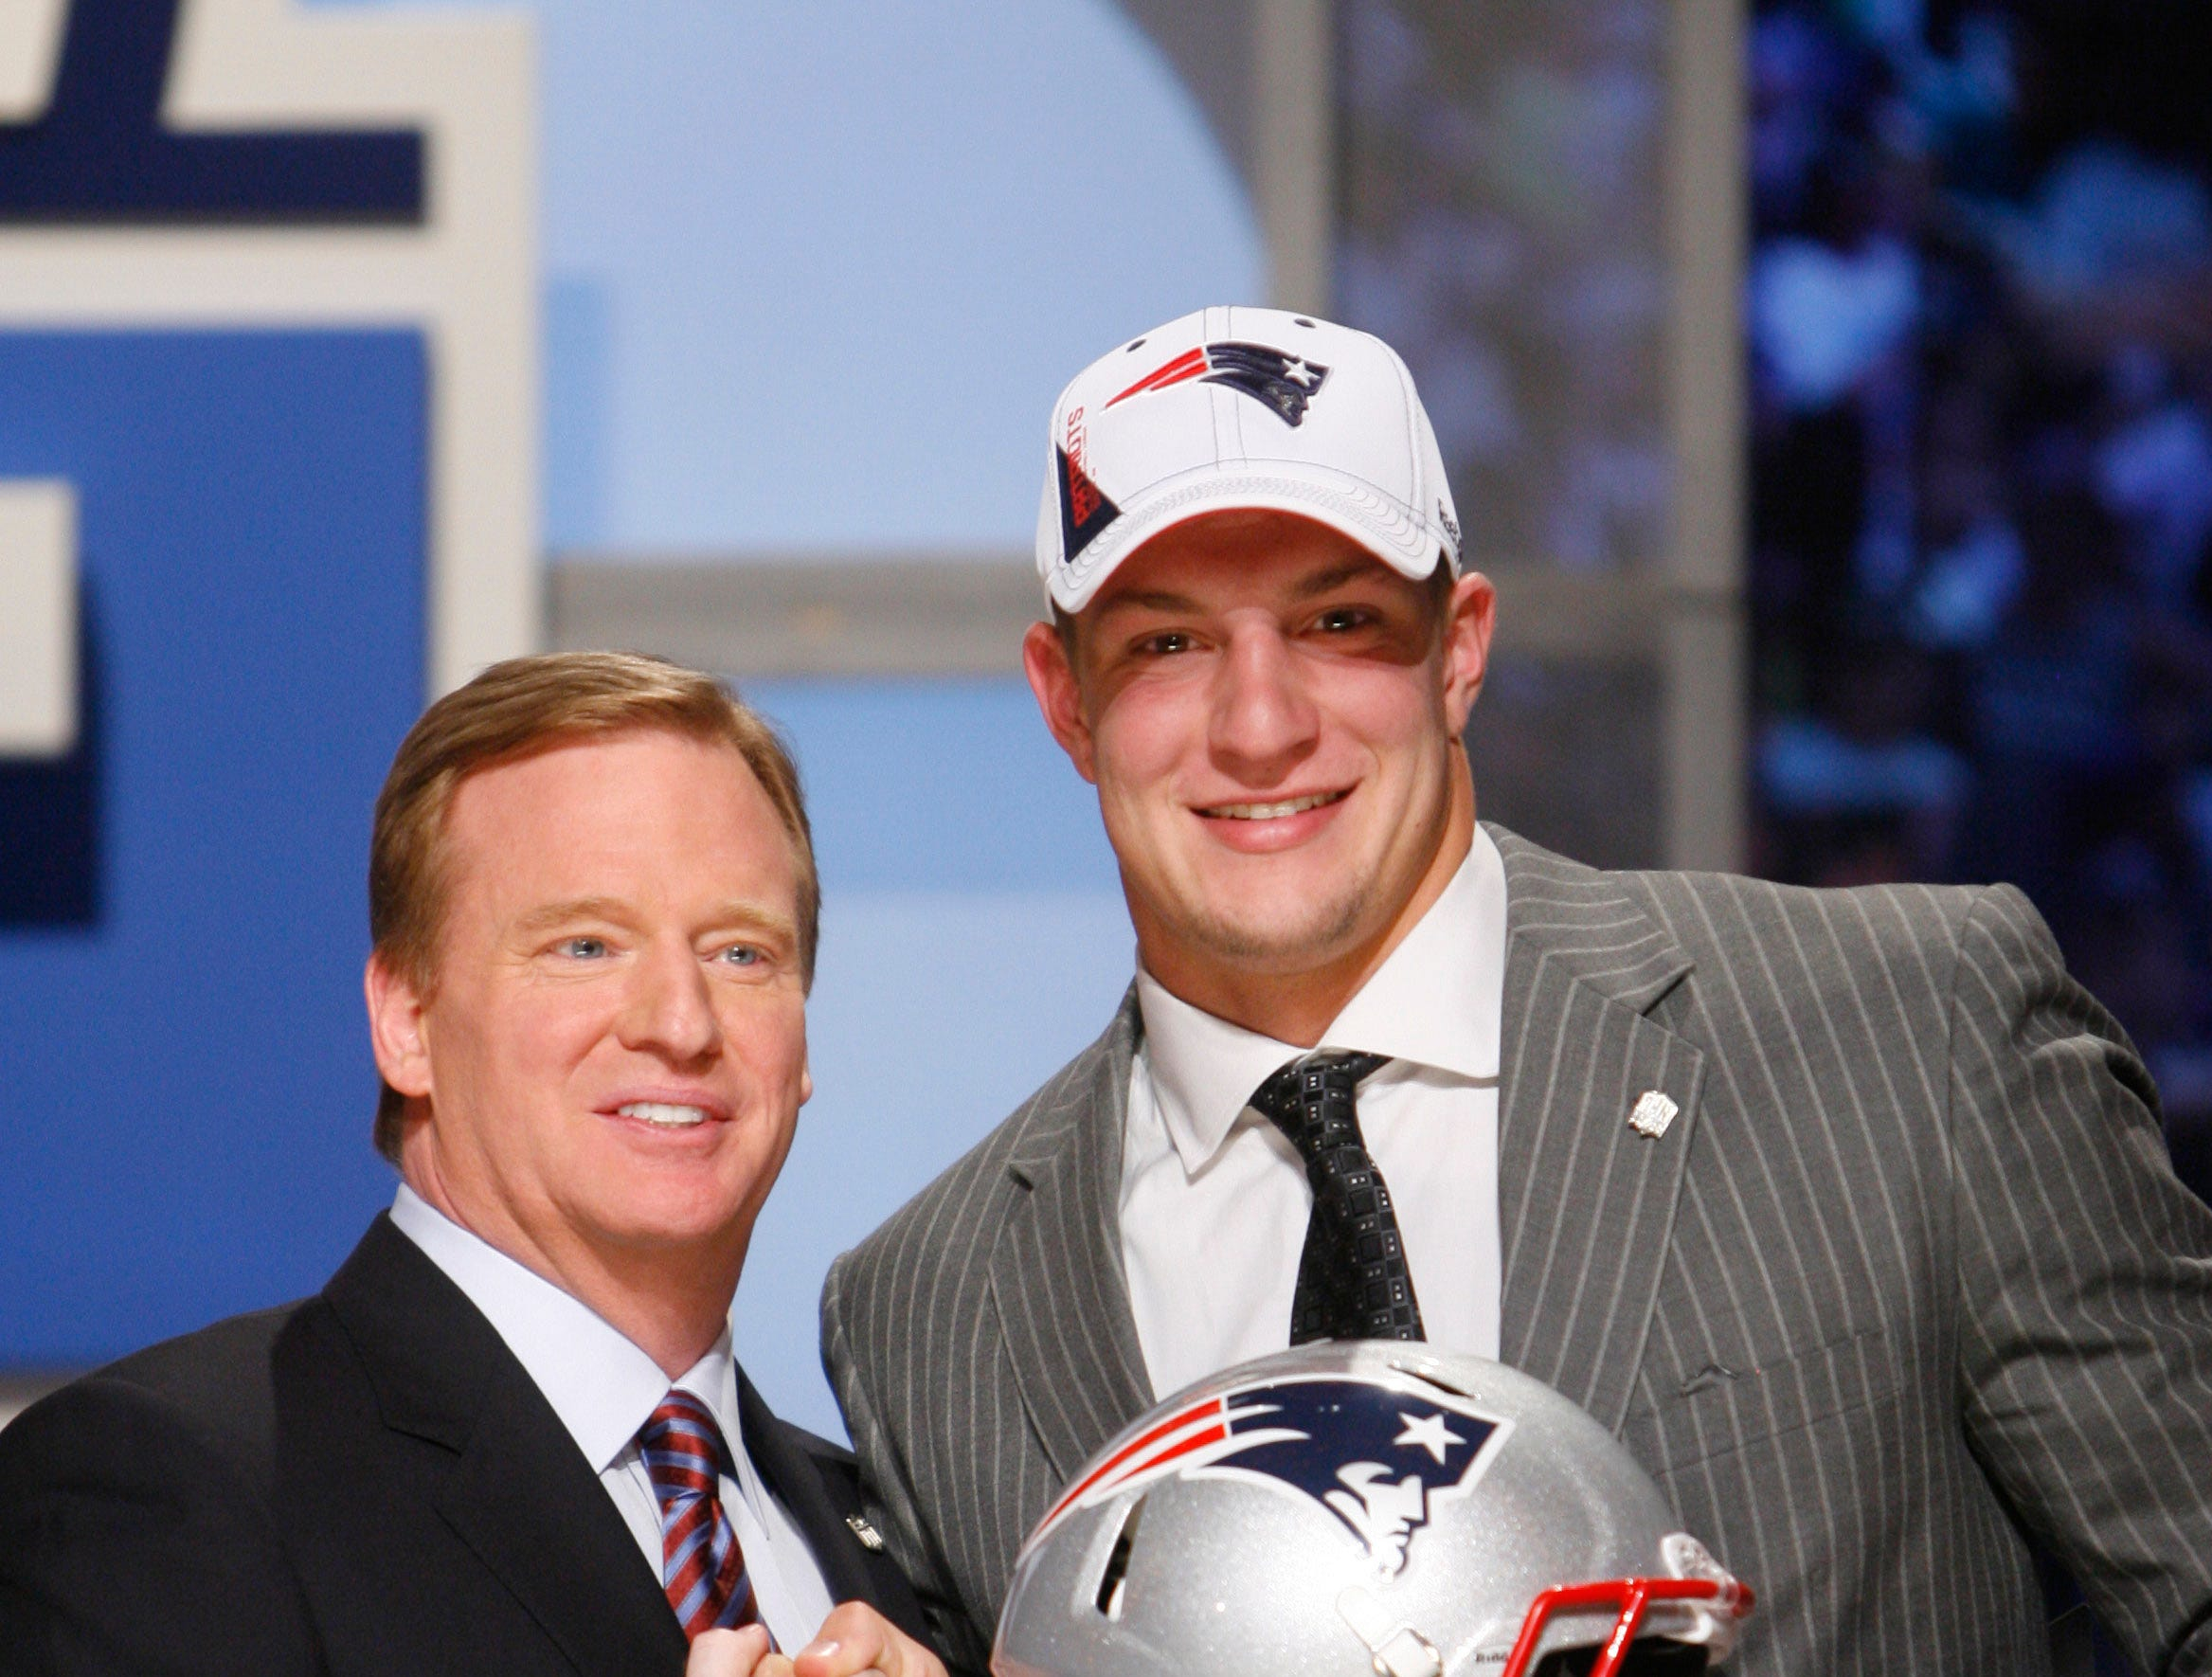 April 23, 2010: Rob Gronkowski smiles while posing for photographs with NFL commissioner Roger Goodell after he was selected as the 42nd overall pick by the New England Patriots in the second round of the draft at Radio City Music Hall.